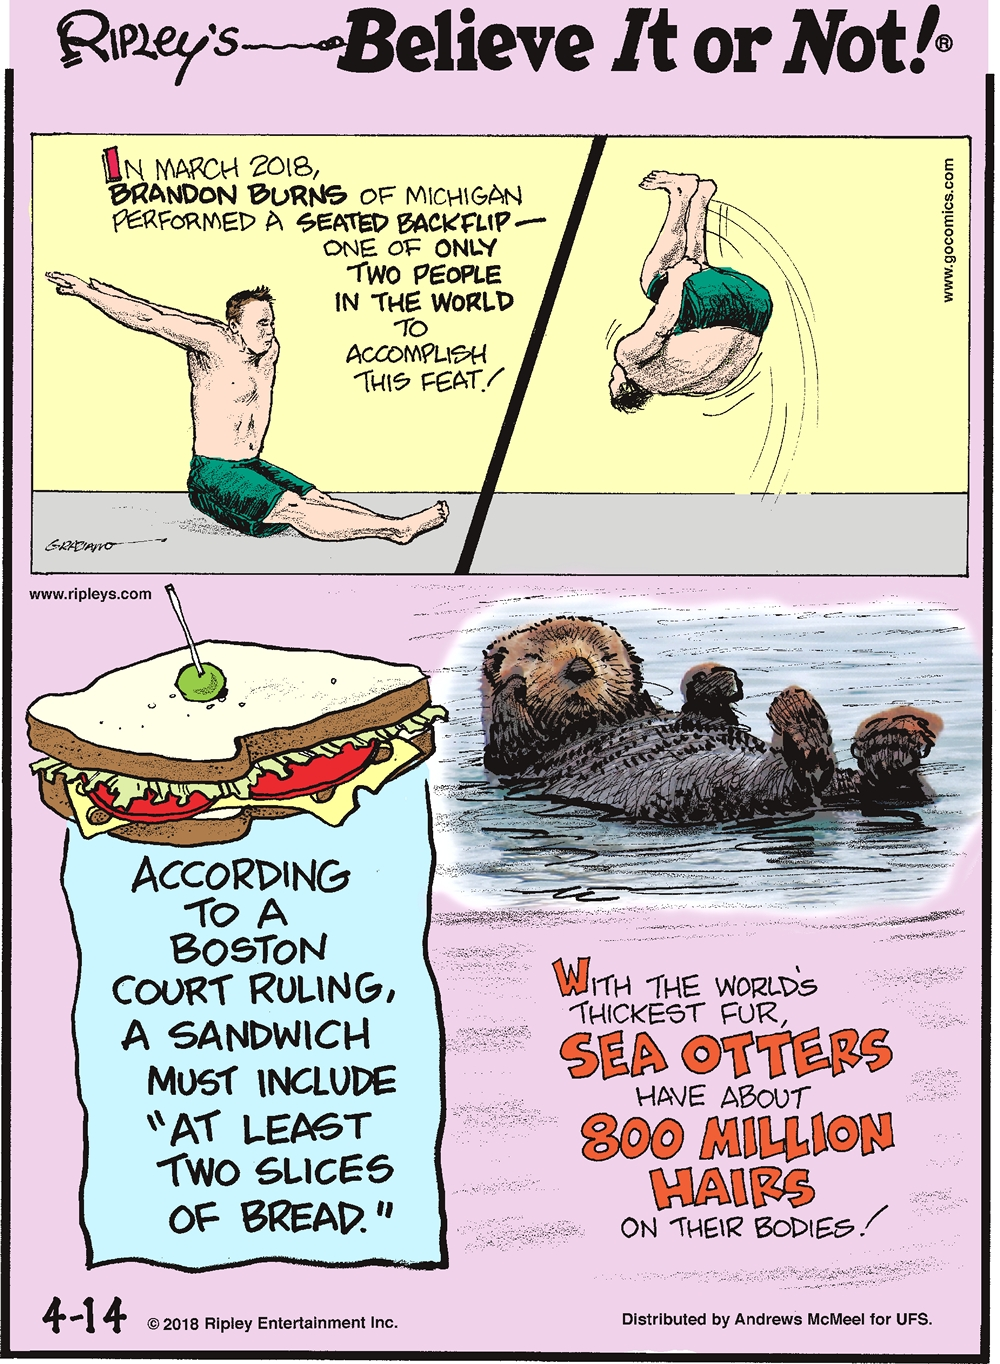 """In March 2018, Brandon Burns of Michigan performed a seated backflip - one of only two people in the world to accomplish this feat!-------------------- According to a Boston court ruling, a sandwich must include """"at least two slices of bread.""""-------------------- With the world's thickest fur, sea otters have about 800 million hairs on their bodies!"""